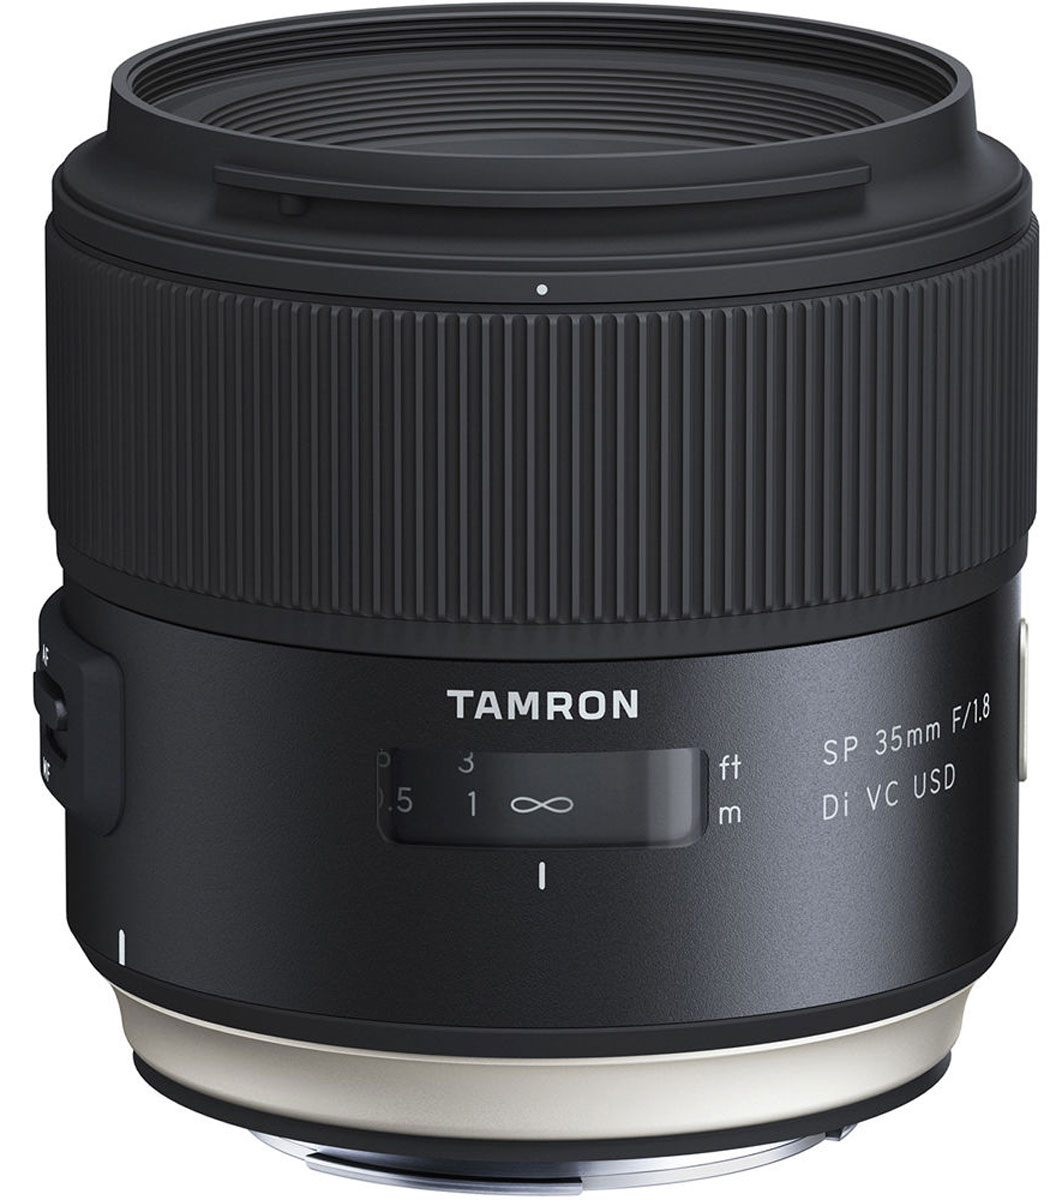 Tamron SP 35mm F/1.8 DI VC USD, Black объектив для Canon - Объективы